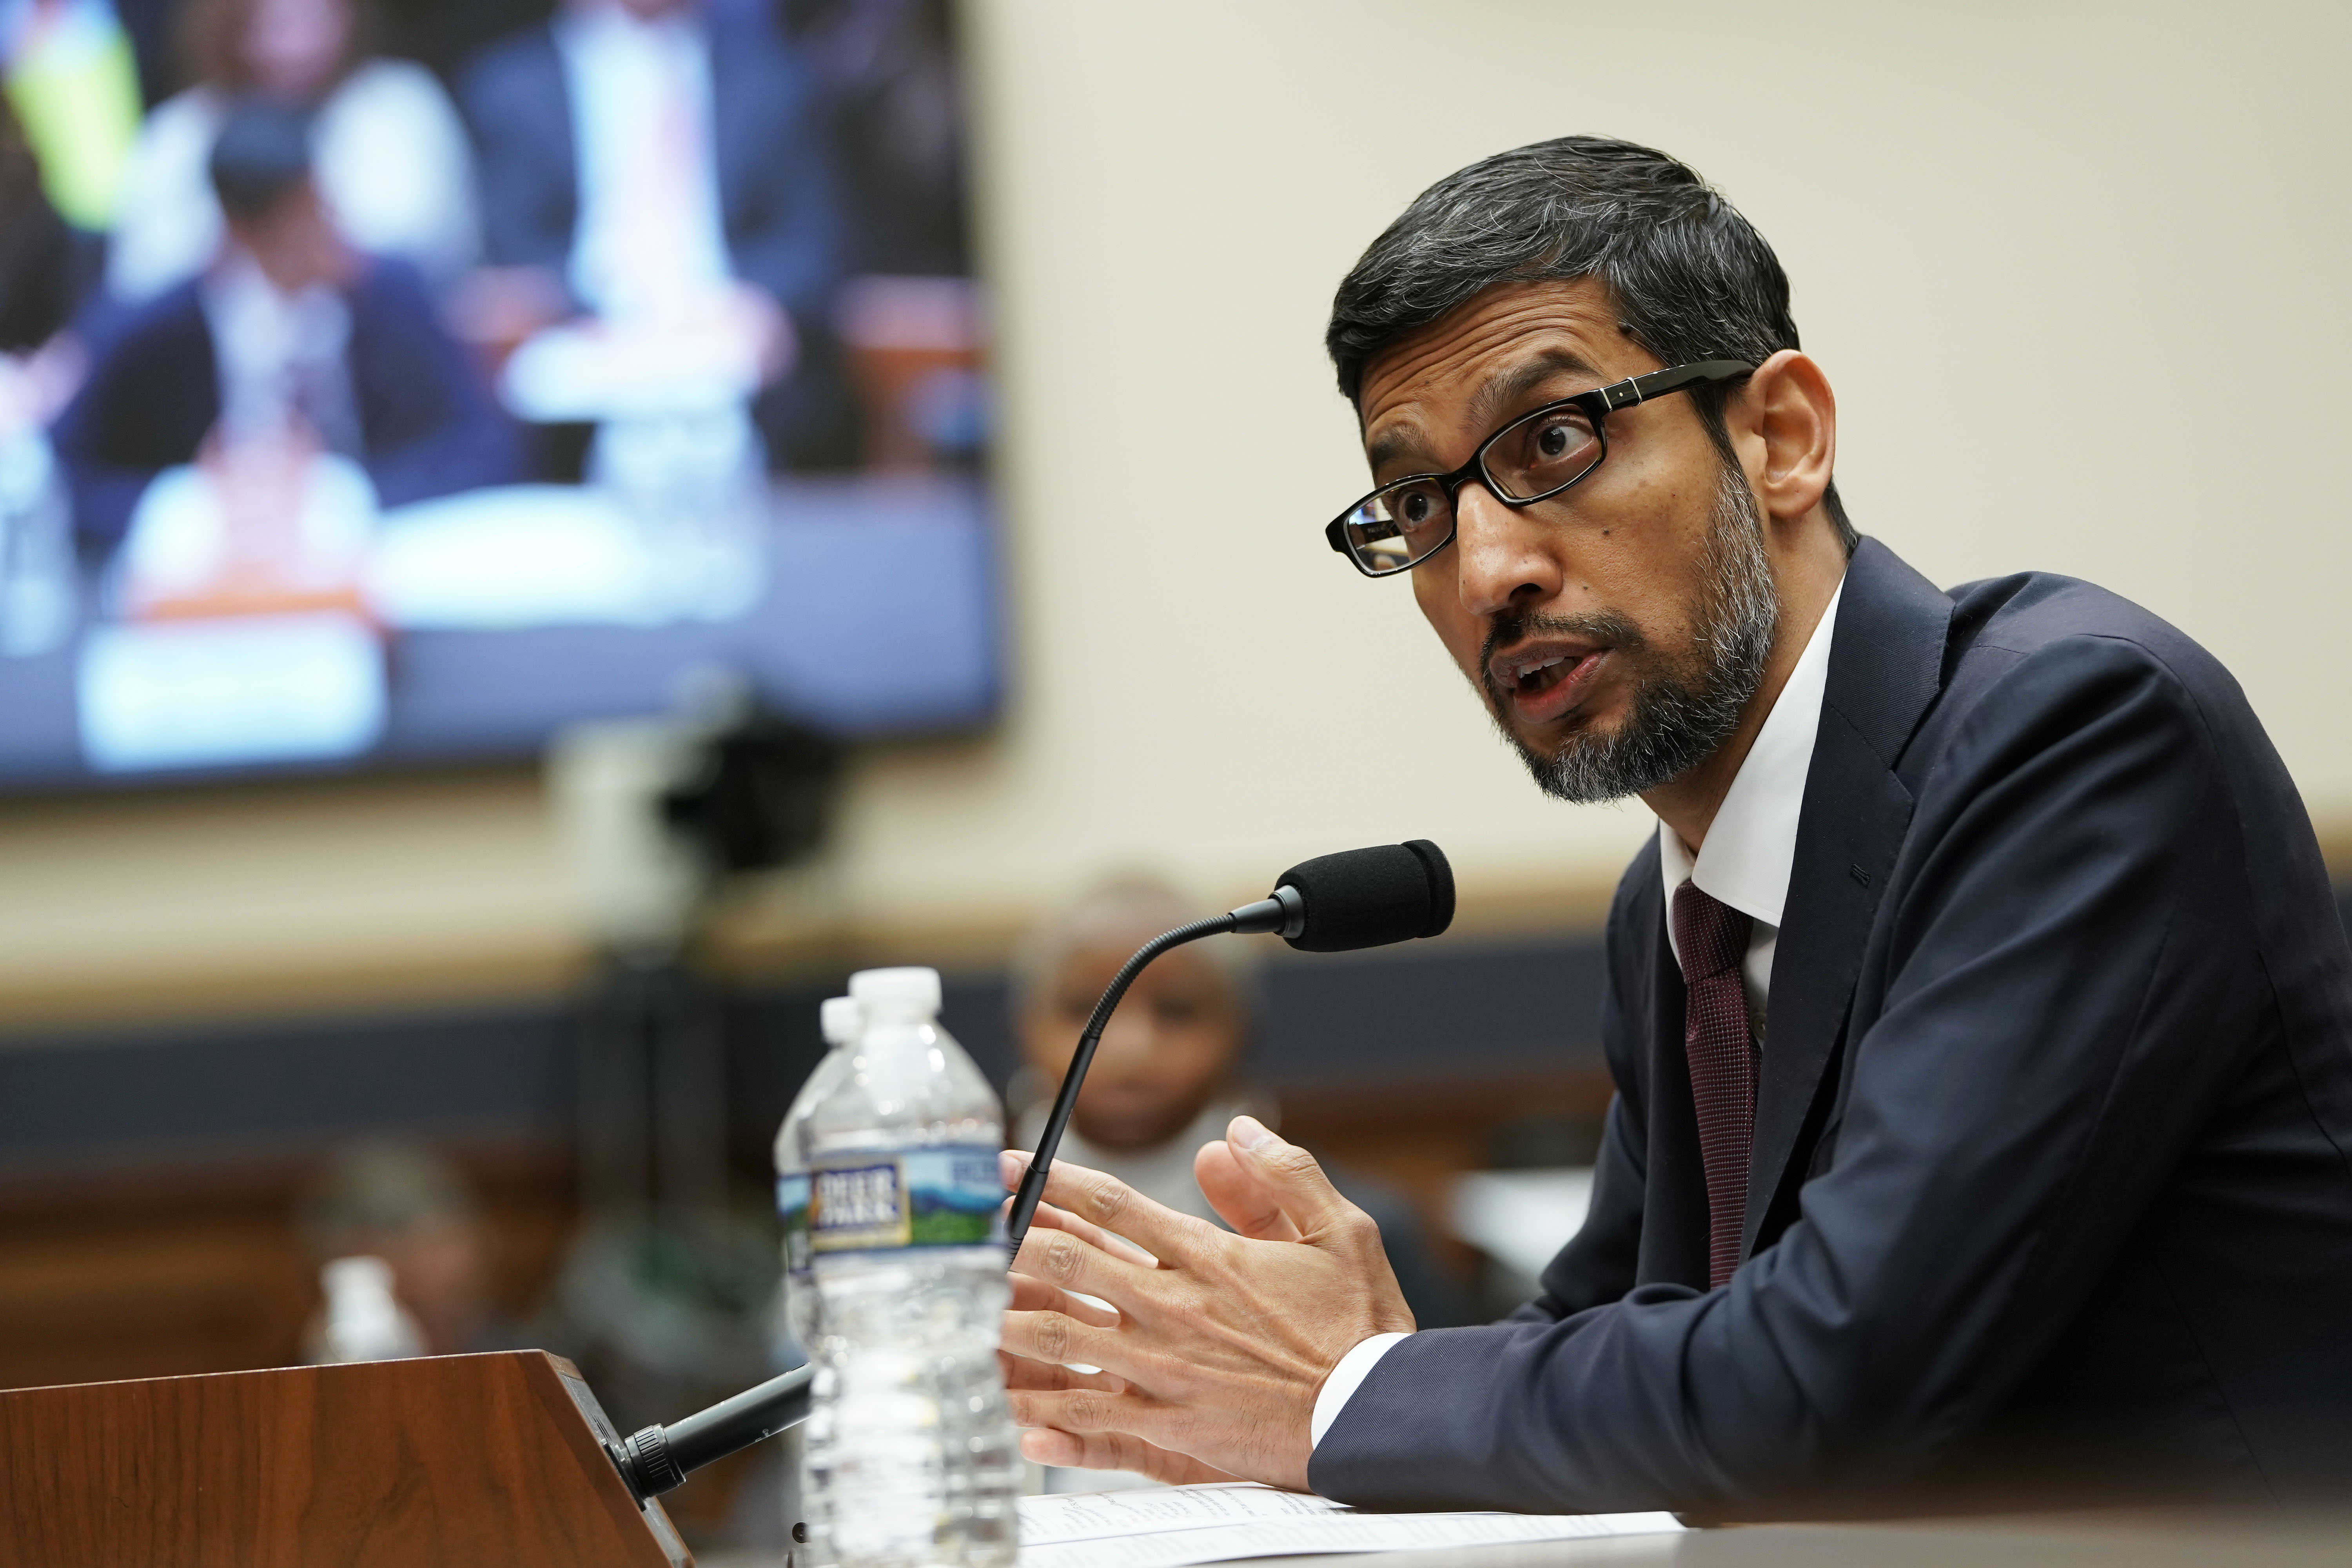 Google CEO Sundar Pichai testifies before the House Judiciary Committee at the Rayburn House Office Building on December 11, 2018 in Washington, DC. (Photo by Alex Wong/Getty Images)